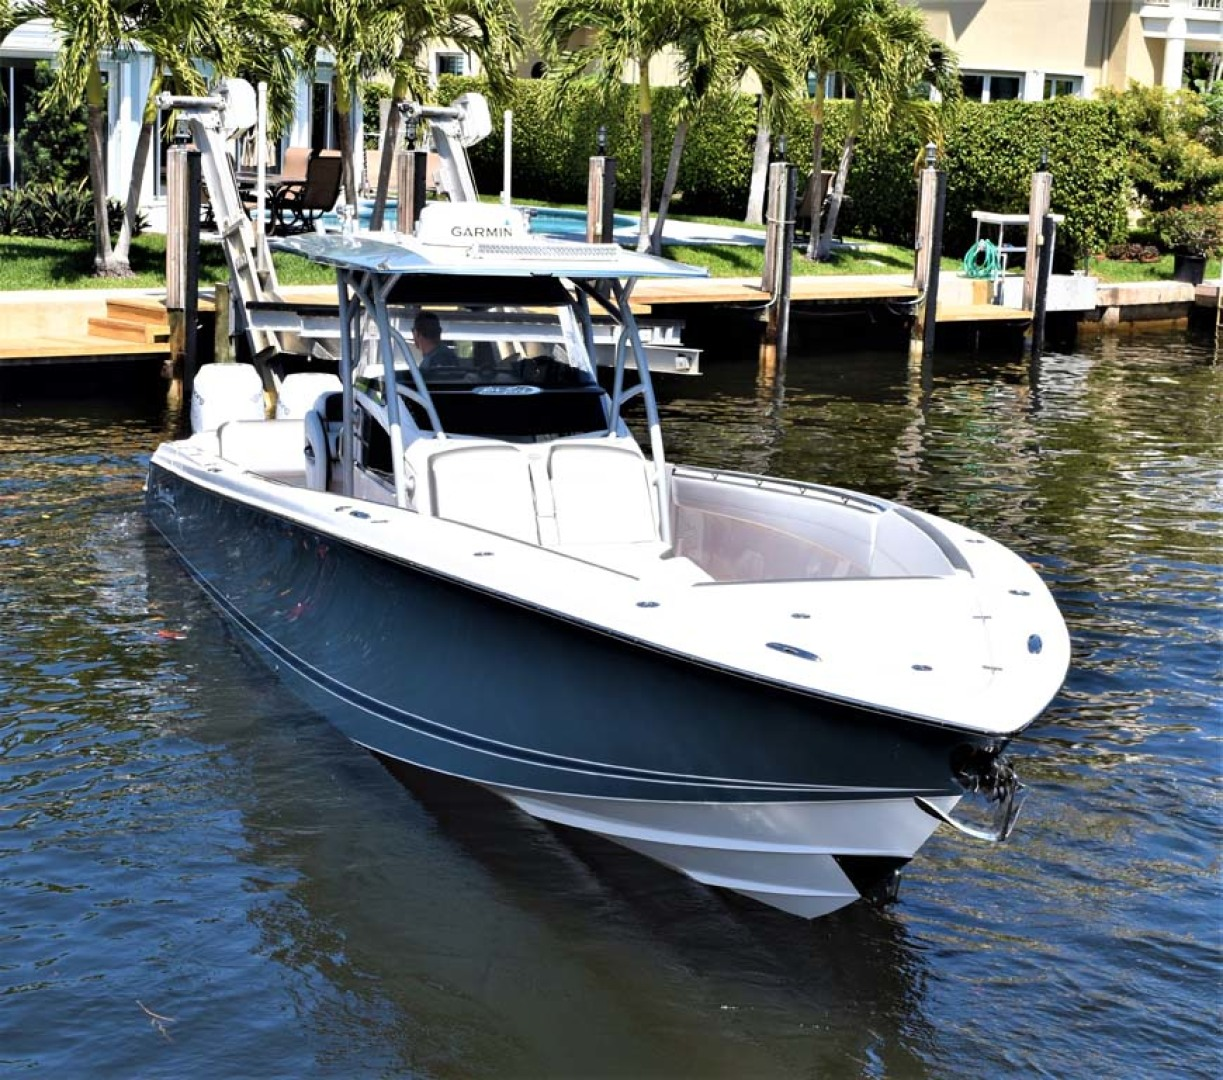 Nor-Tech-390 Sport 2018 -Boca Raton-Florida-United States-Stbd Bow-1130597 | Thumbnail